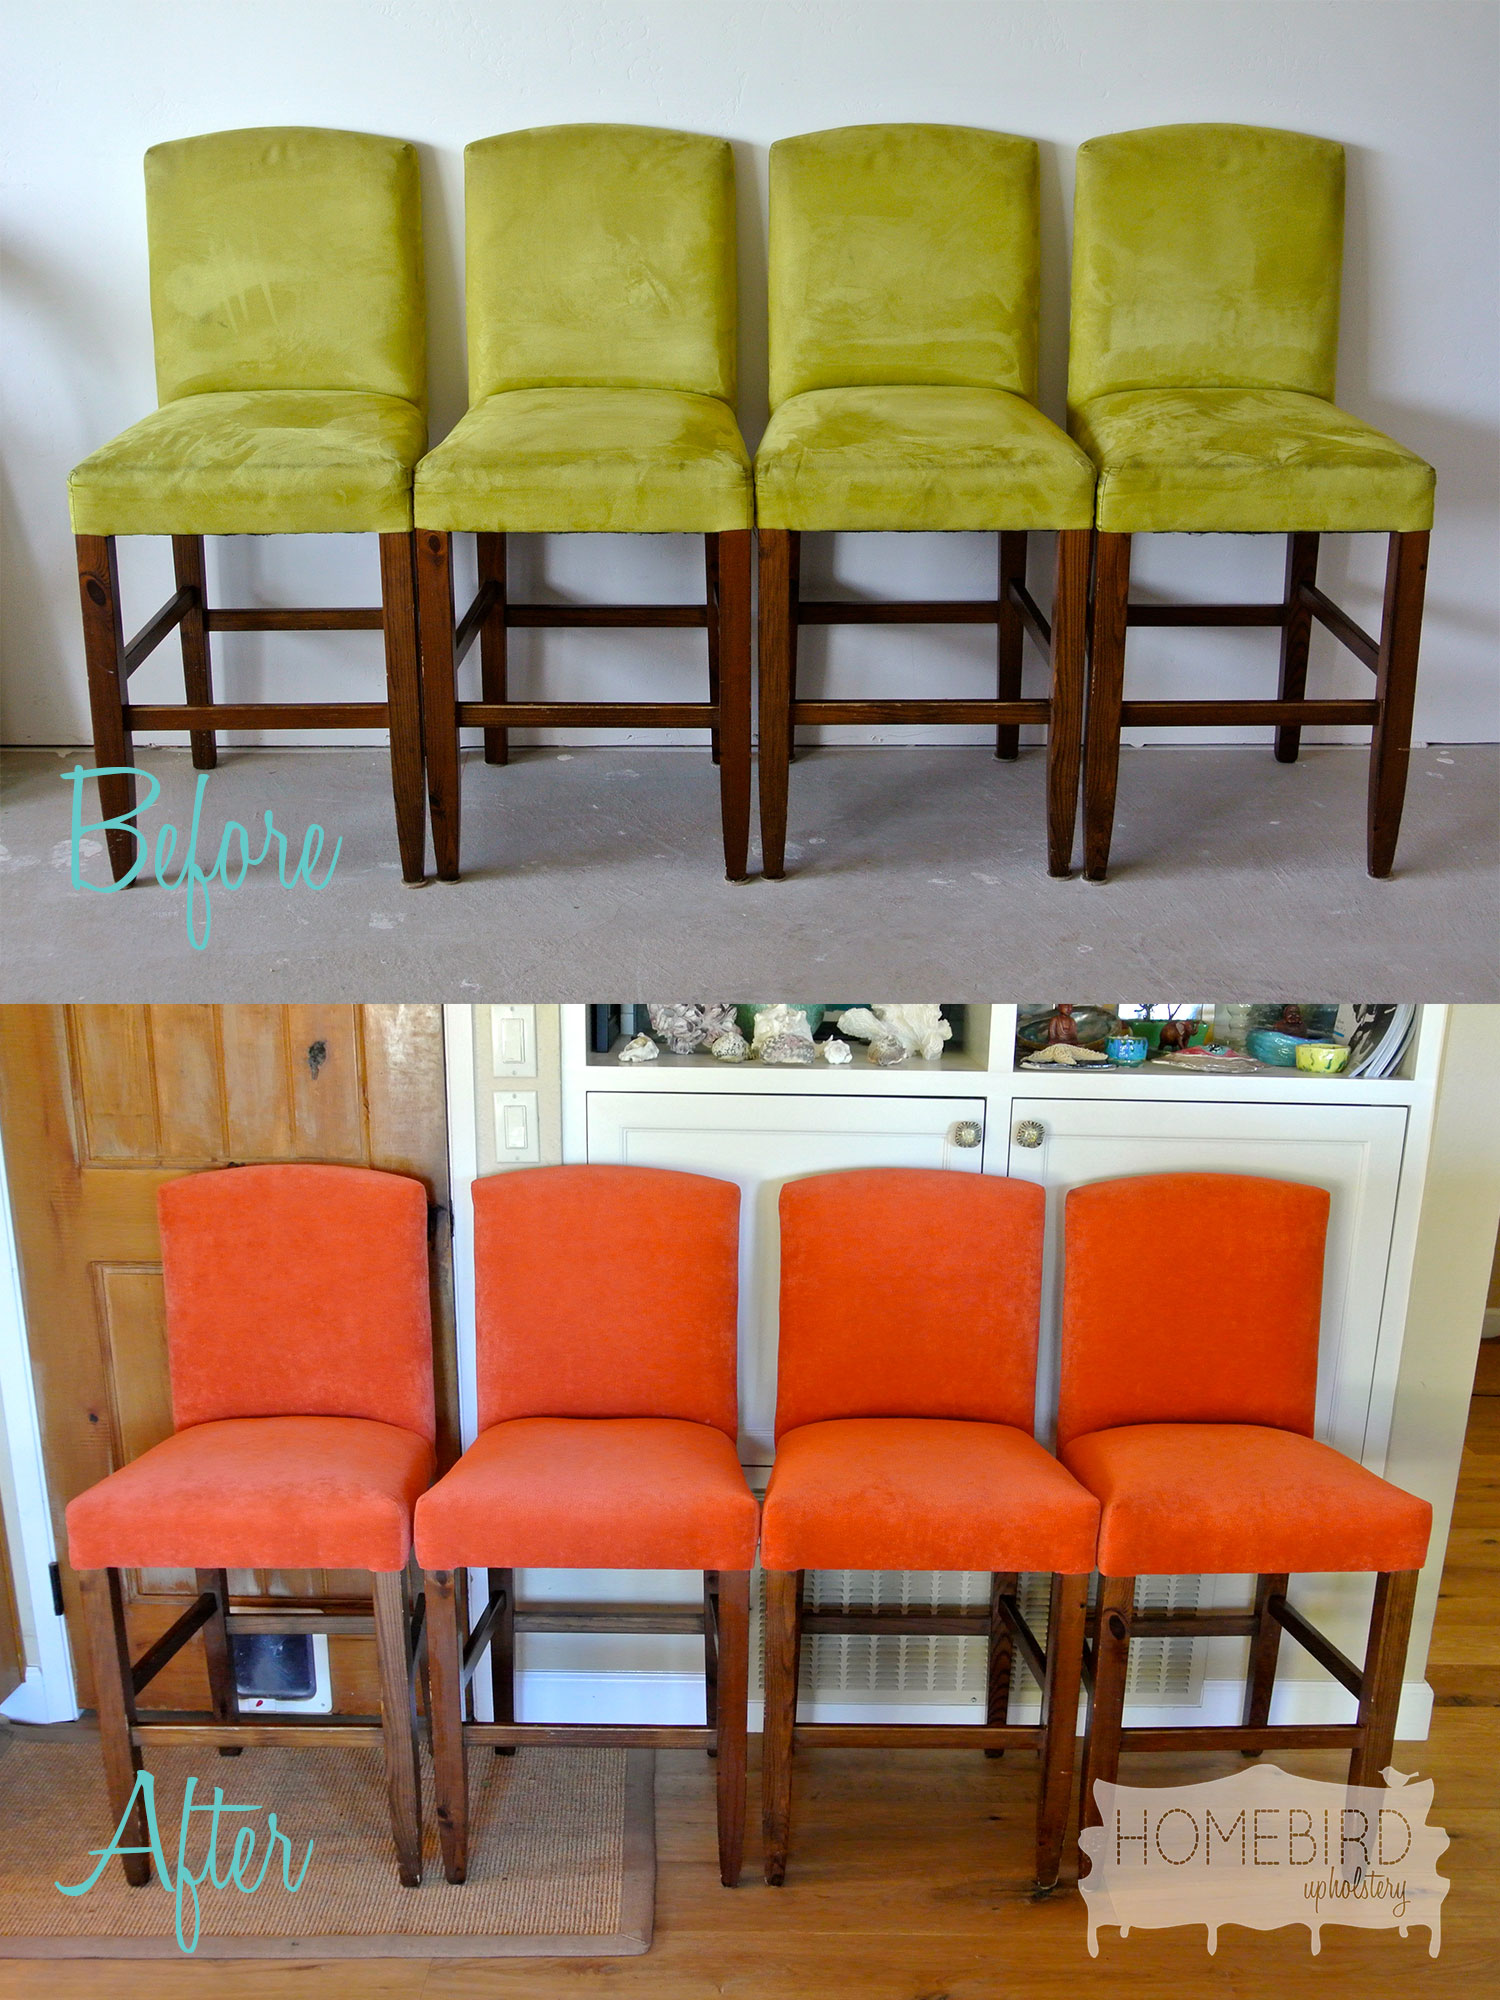 HB-B&A-Chair-Stools-Teal